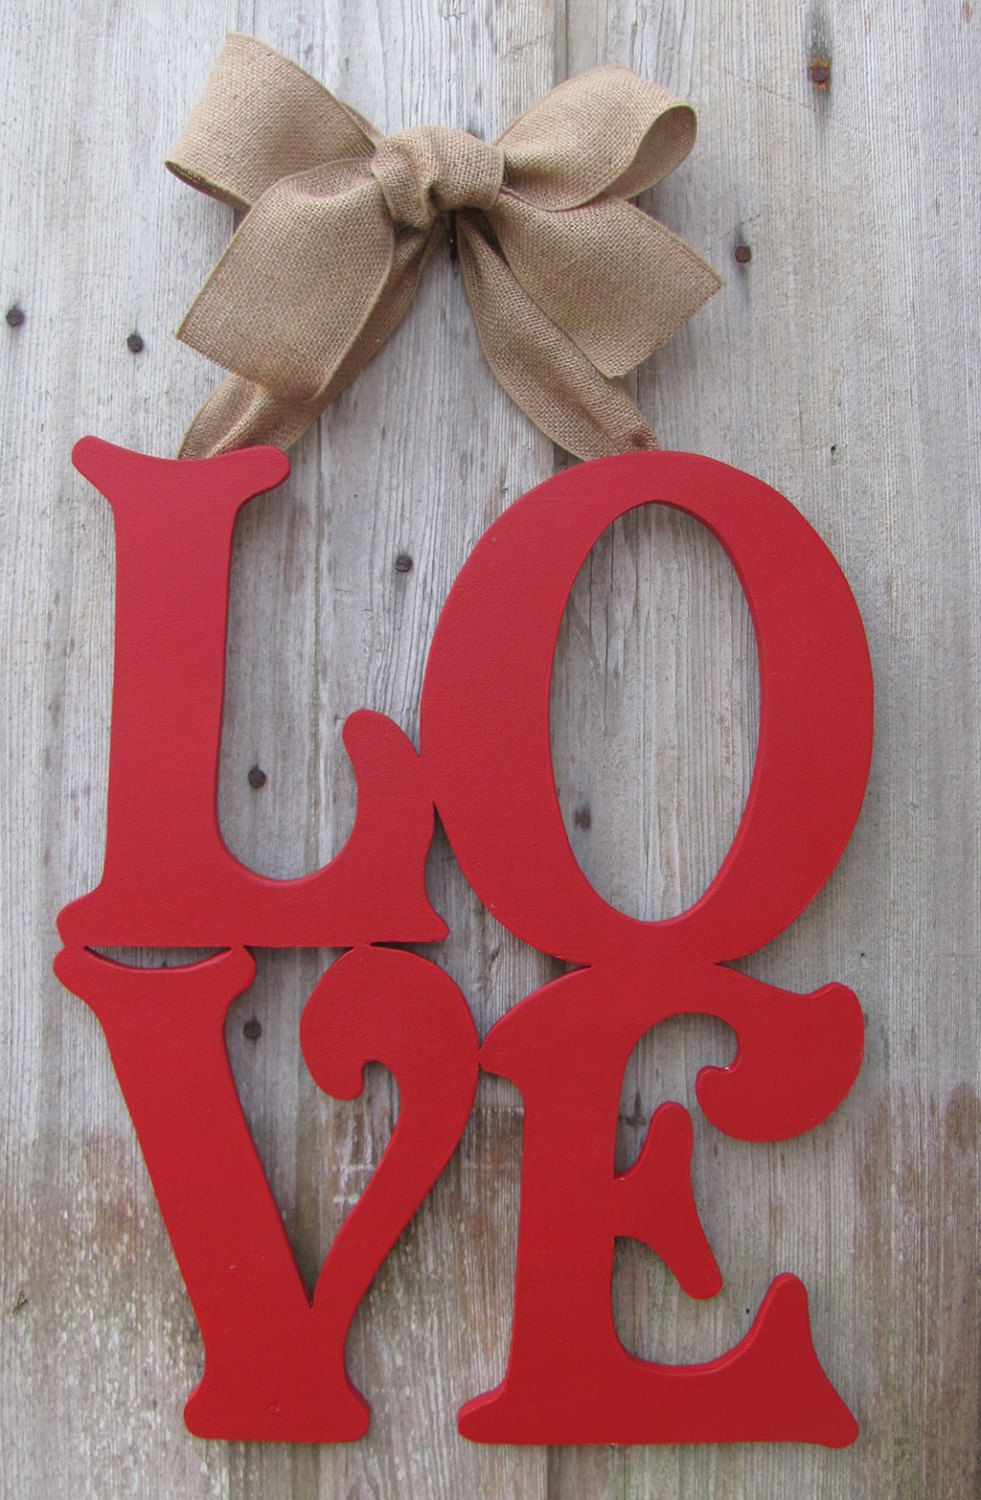 Love valentine 39 s day door decor wooden letter art home for Home decorations for valentine s day